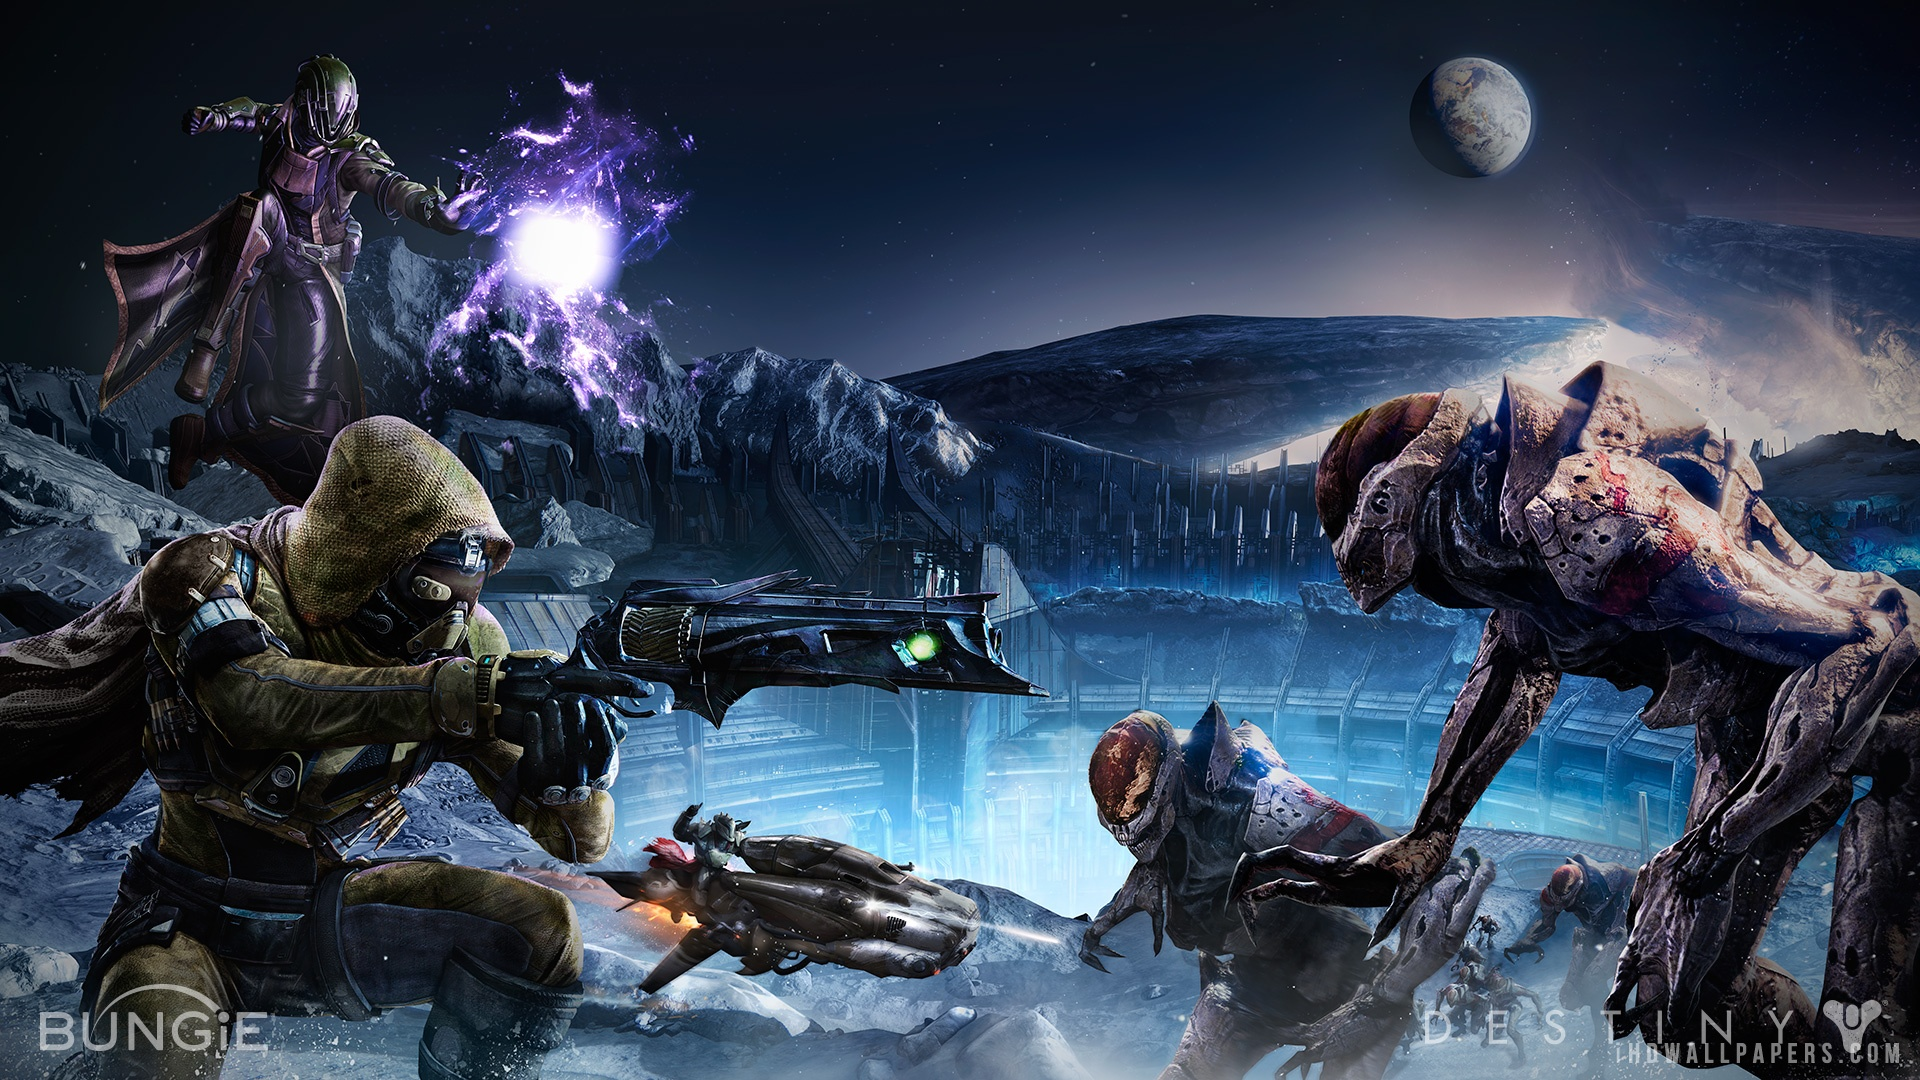 Bungie Destiny HD Wallpaper   iHD Wallpapers 1920x1080